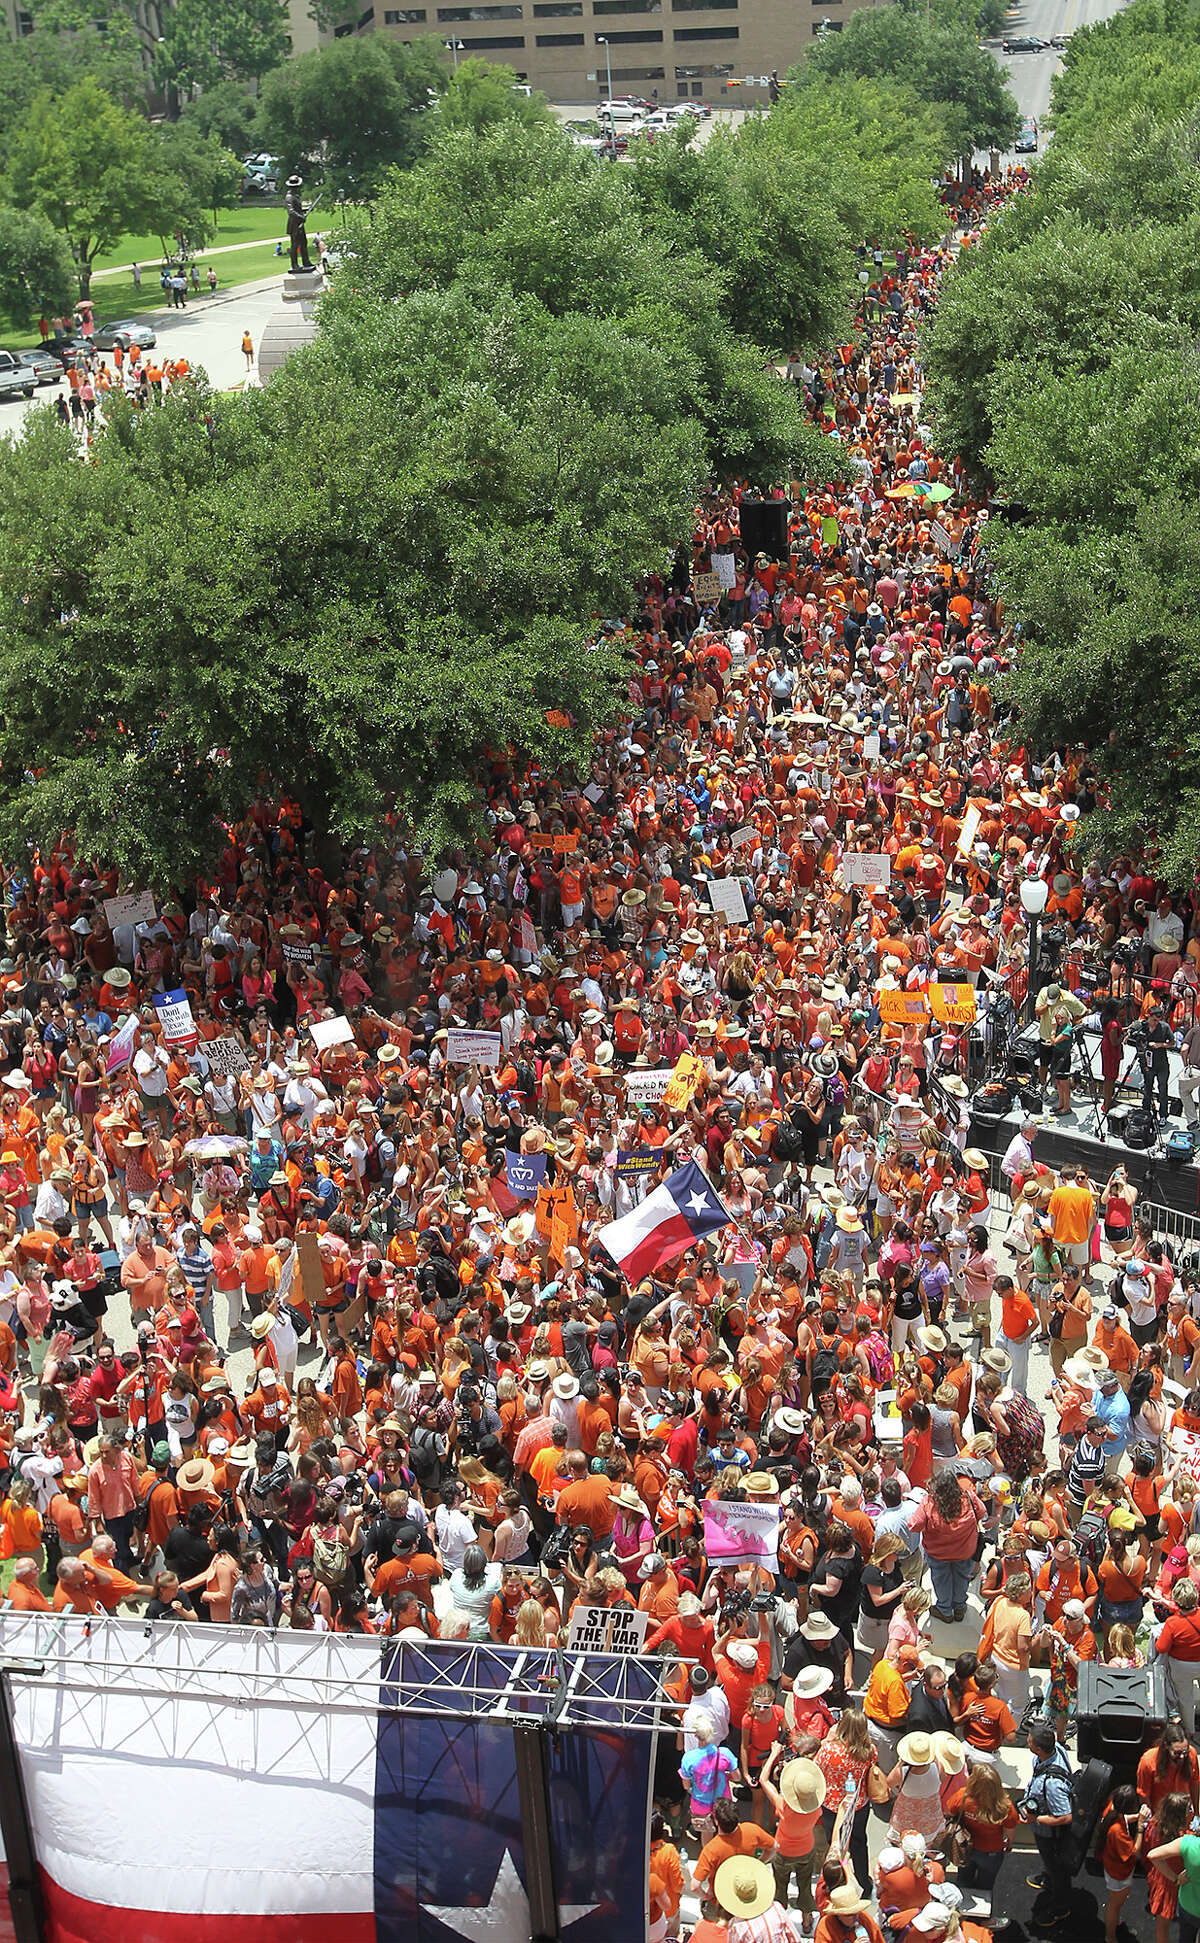 Thousands are drawn to the Stand Up With Texas Women Rally at State Capitol before the start of the second special session, Monday, July 1, 2013. The anti-abortion legislation rally drew thousands of supporters.